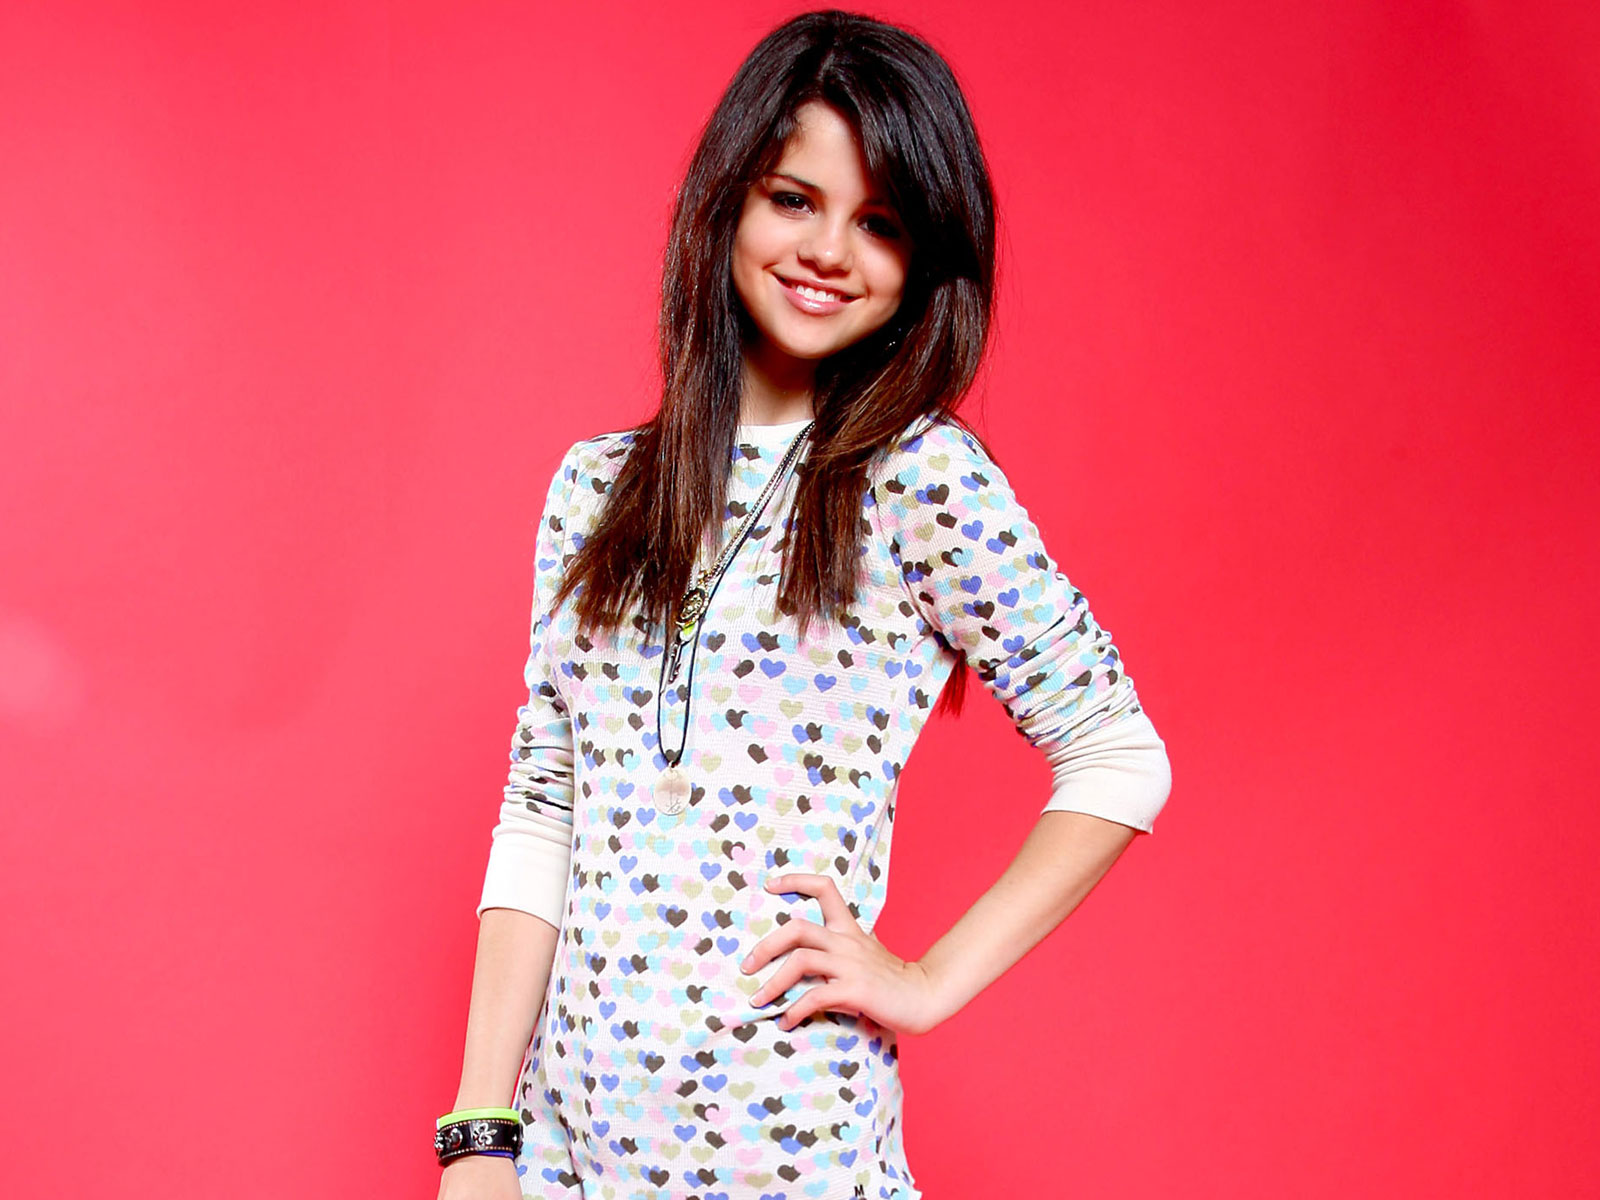 http://1.bp.blogspot.com/-0jSGo3j1n2s/Tfs82eBhh6I/AAAAAAAAChM/9BJ1XiCLM7c/s1600/The-best-top-desktop-selena-gomez-wallpapers-selena-gomez-wallpaper-hd-3.jpg